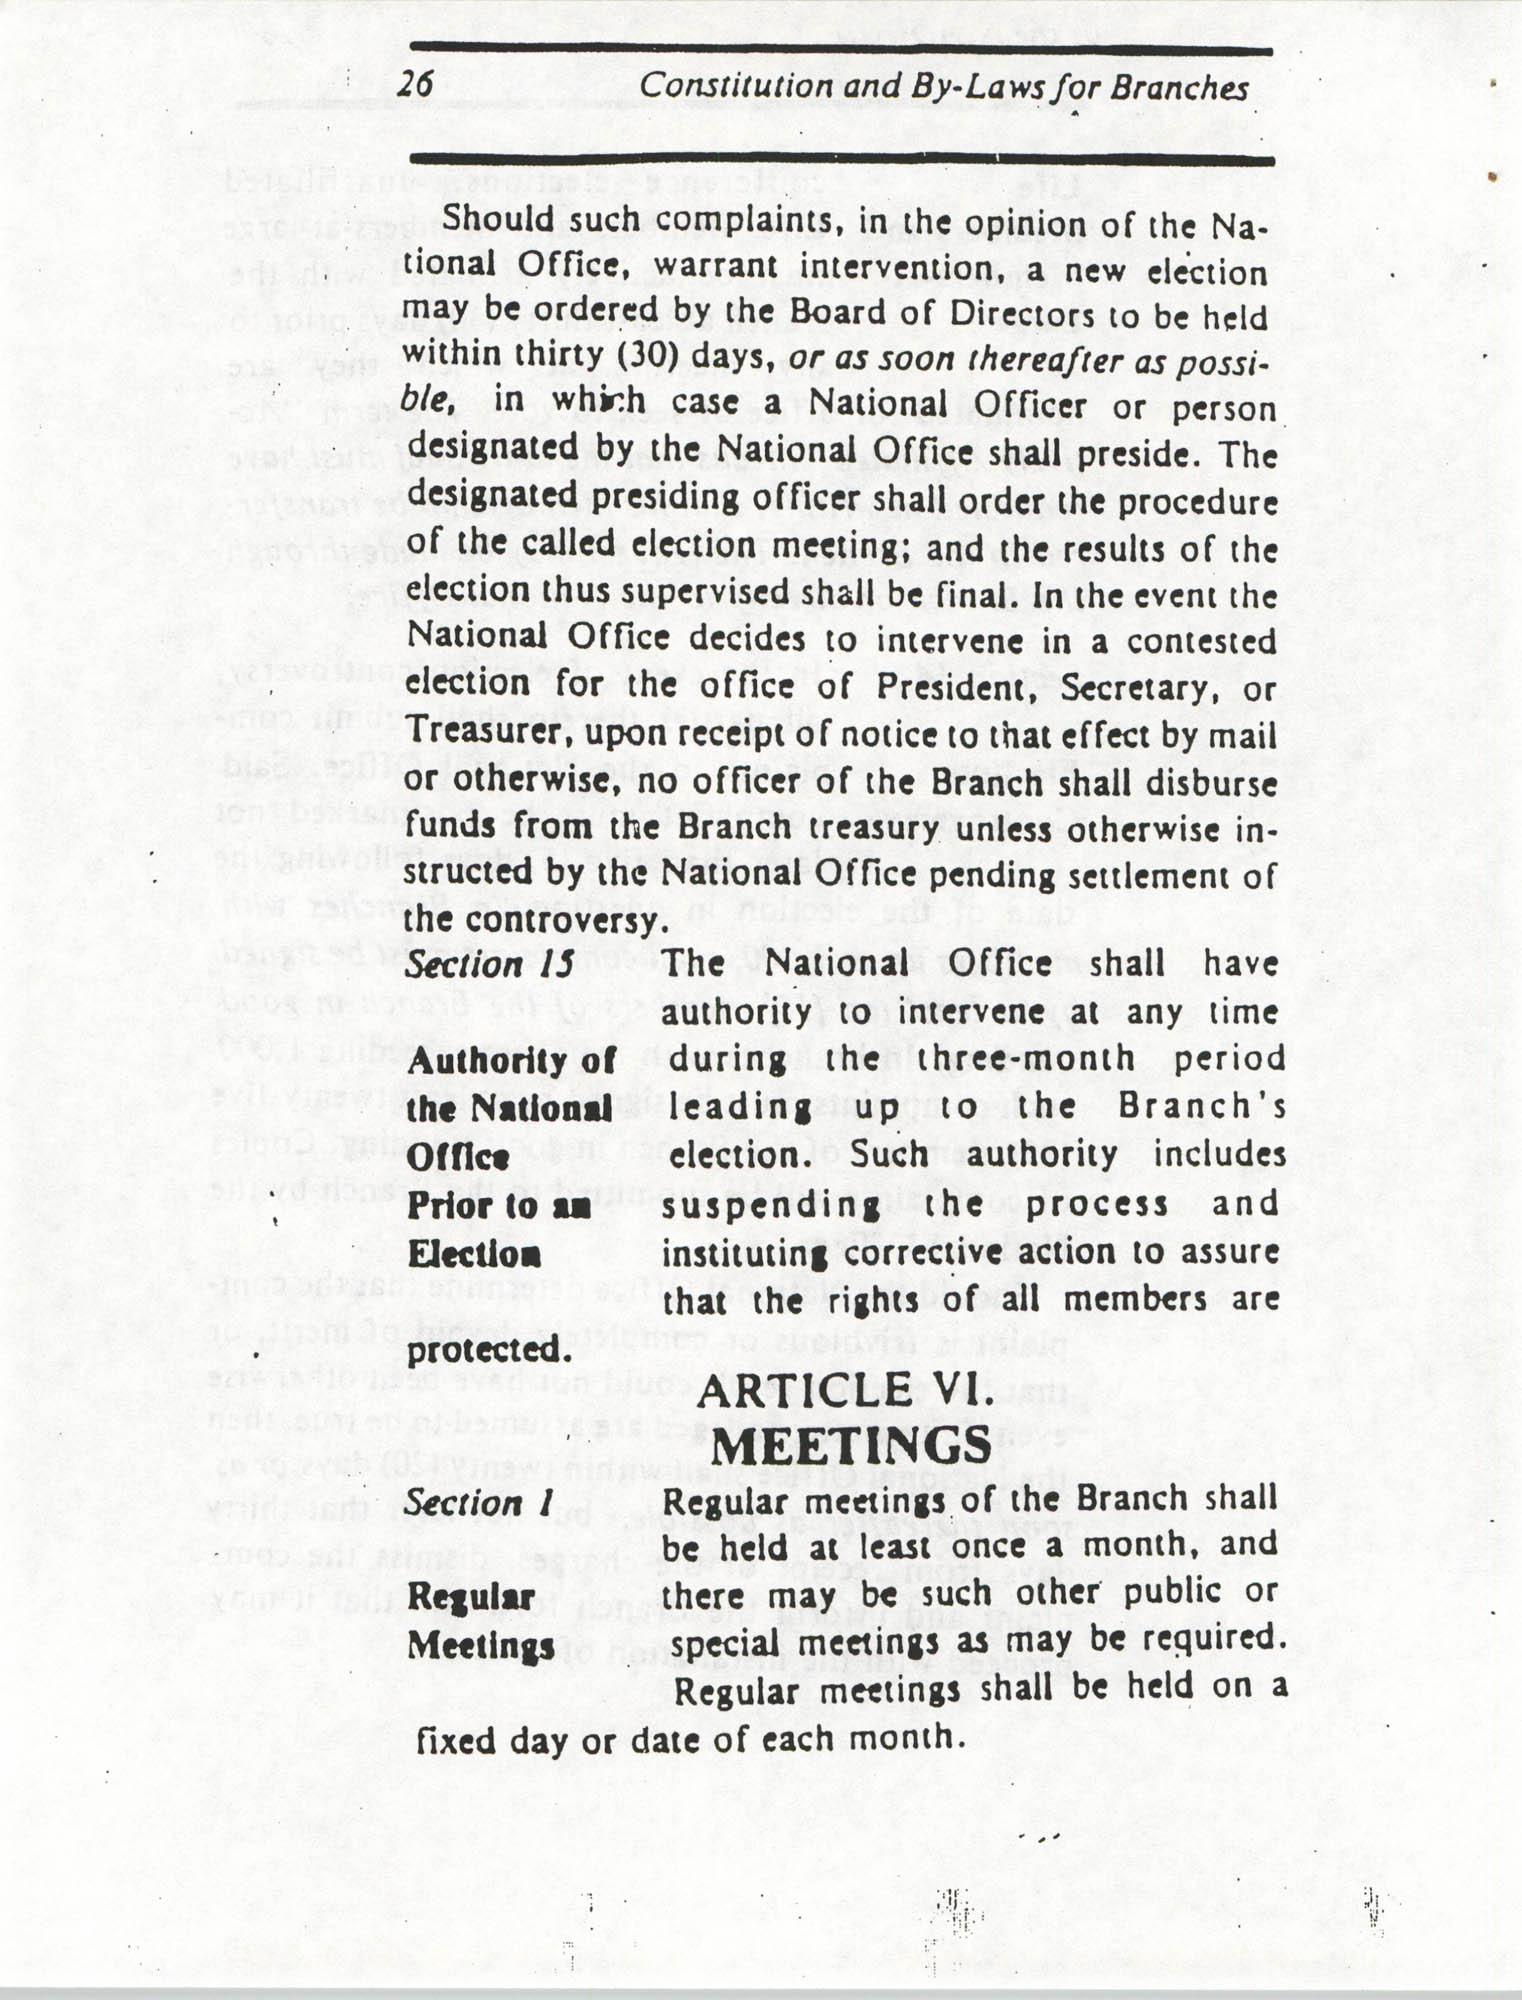 Constitution and By-Laws for Branches of the NAACP, March 1992, Page 26